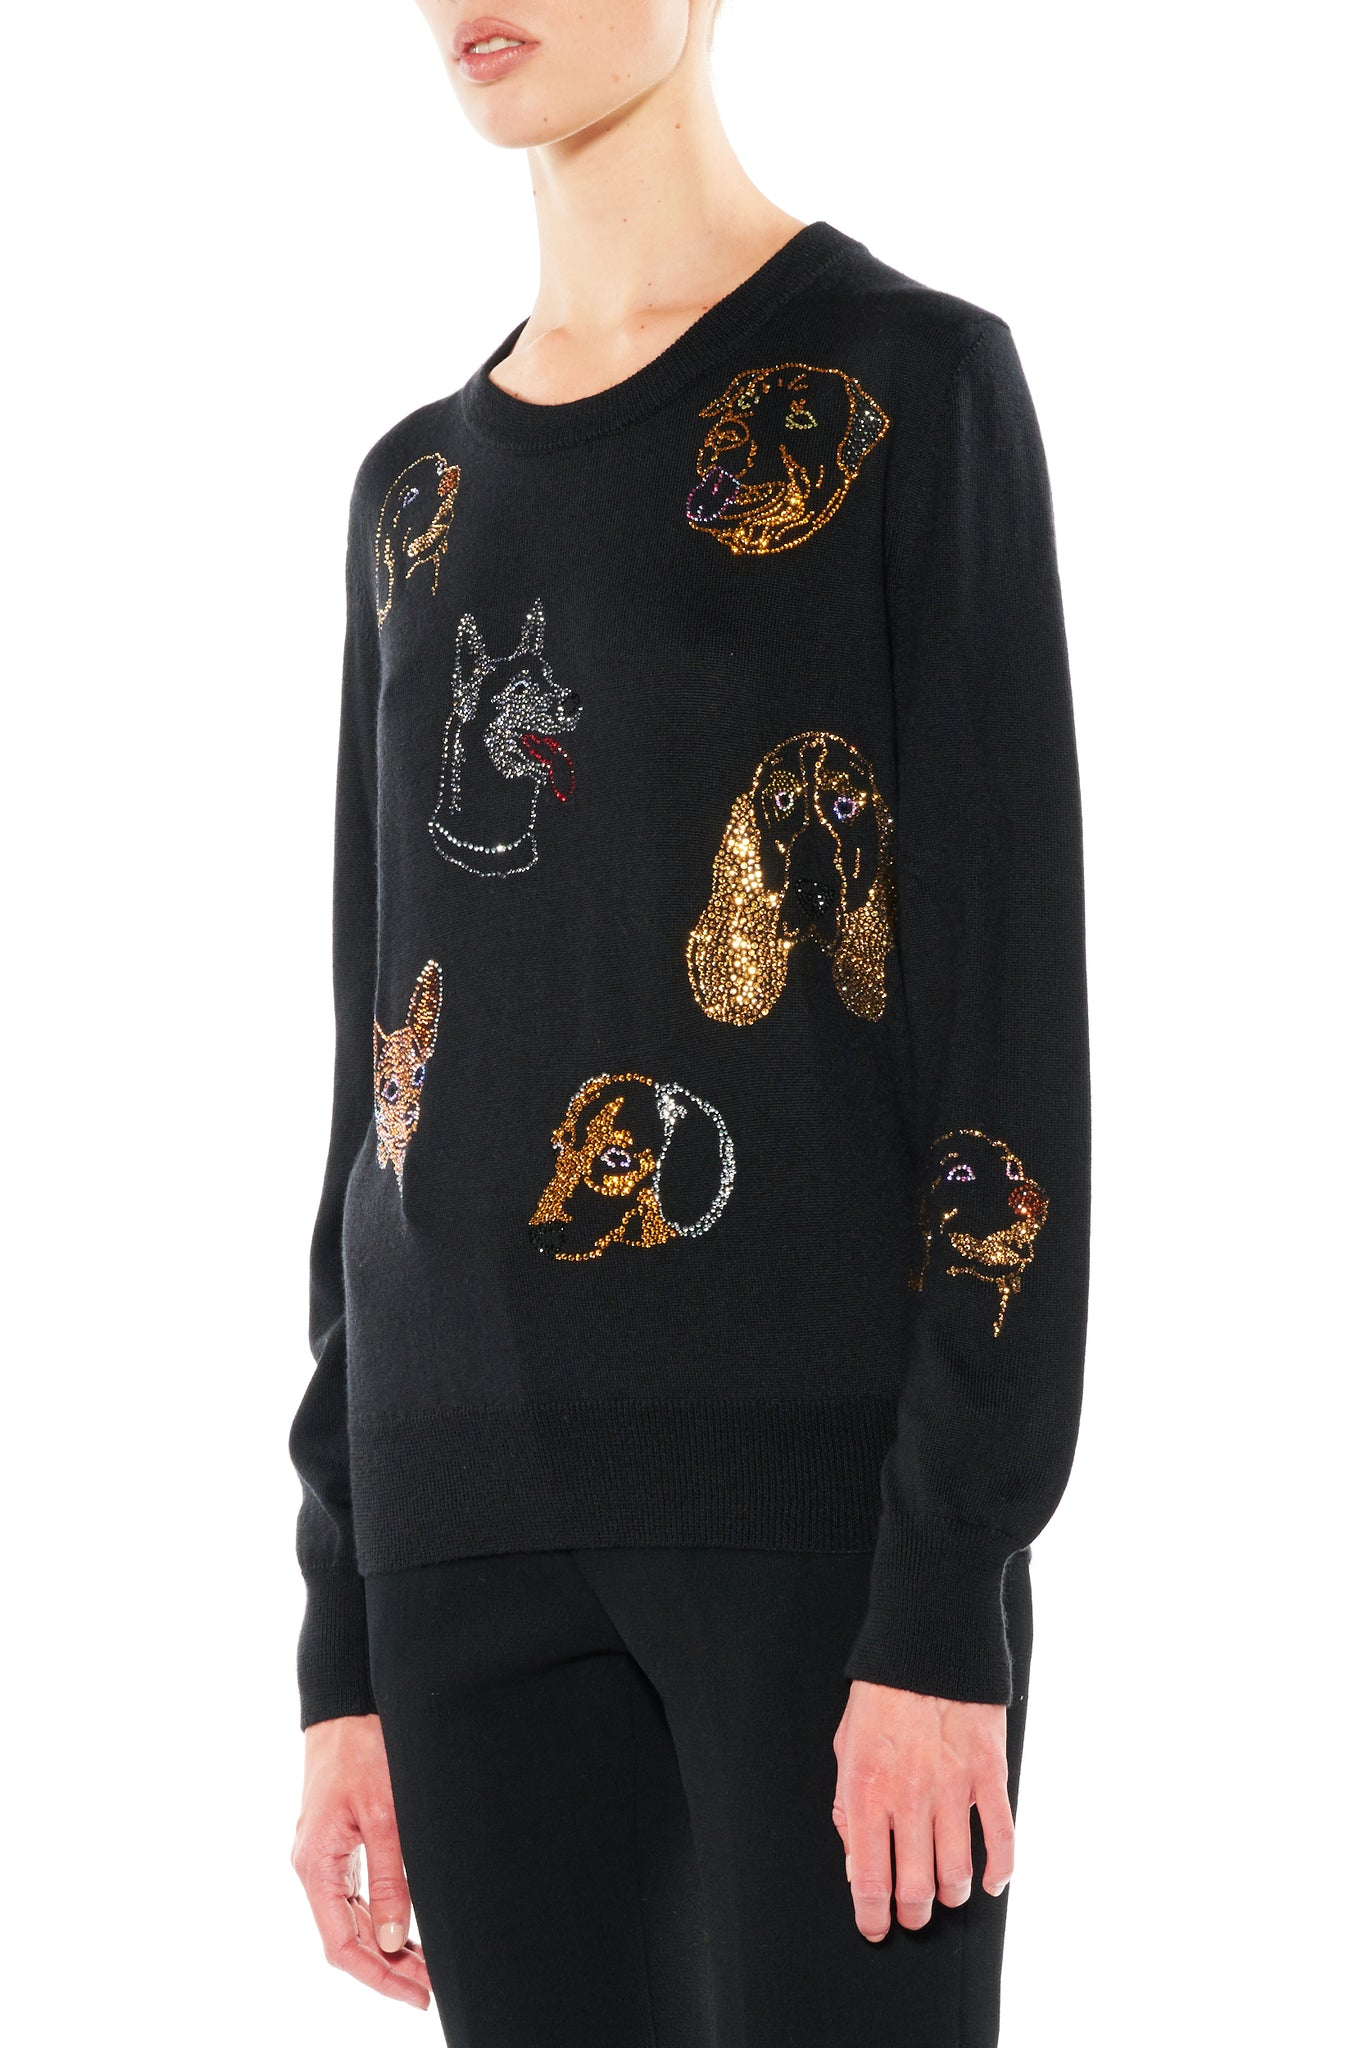 """WHO LET THE DOGS OUT"" CREWNECK PULLOVER - Women's Knits - Libertine"